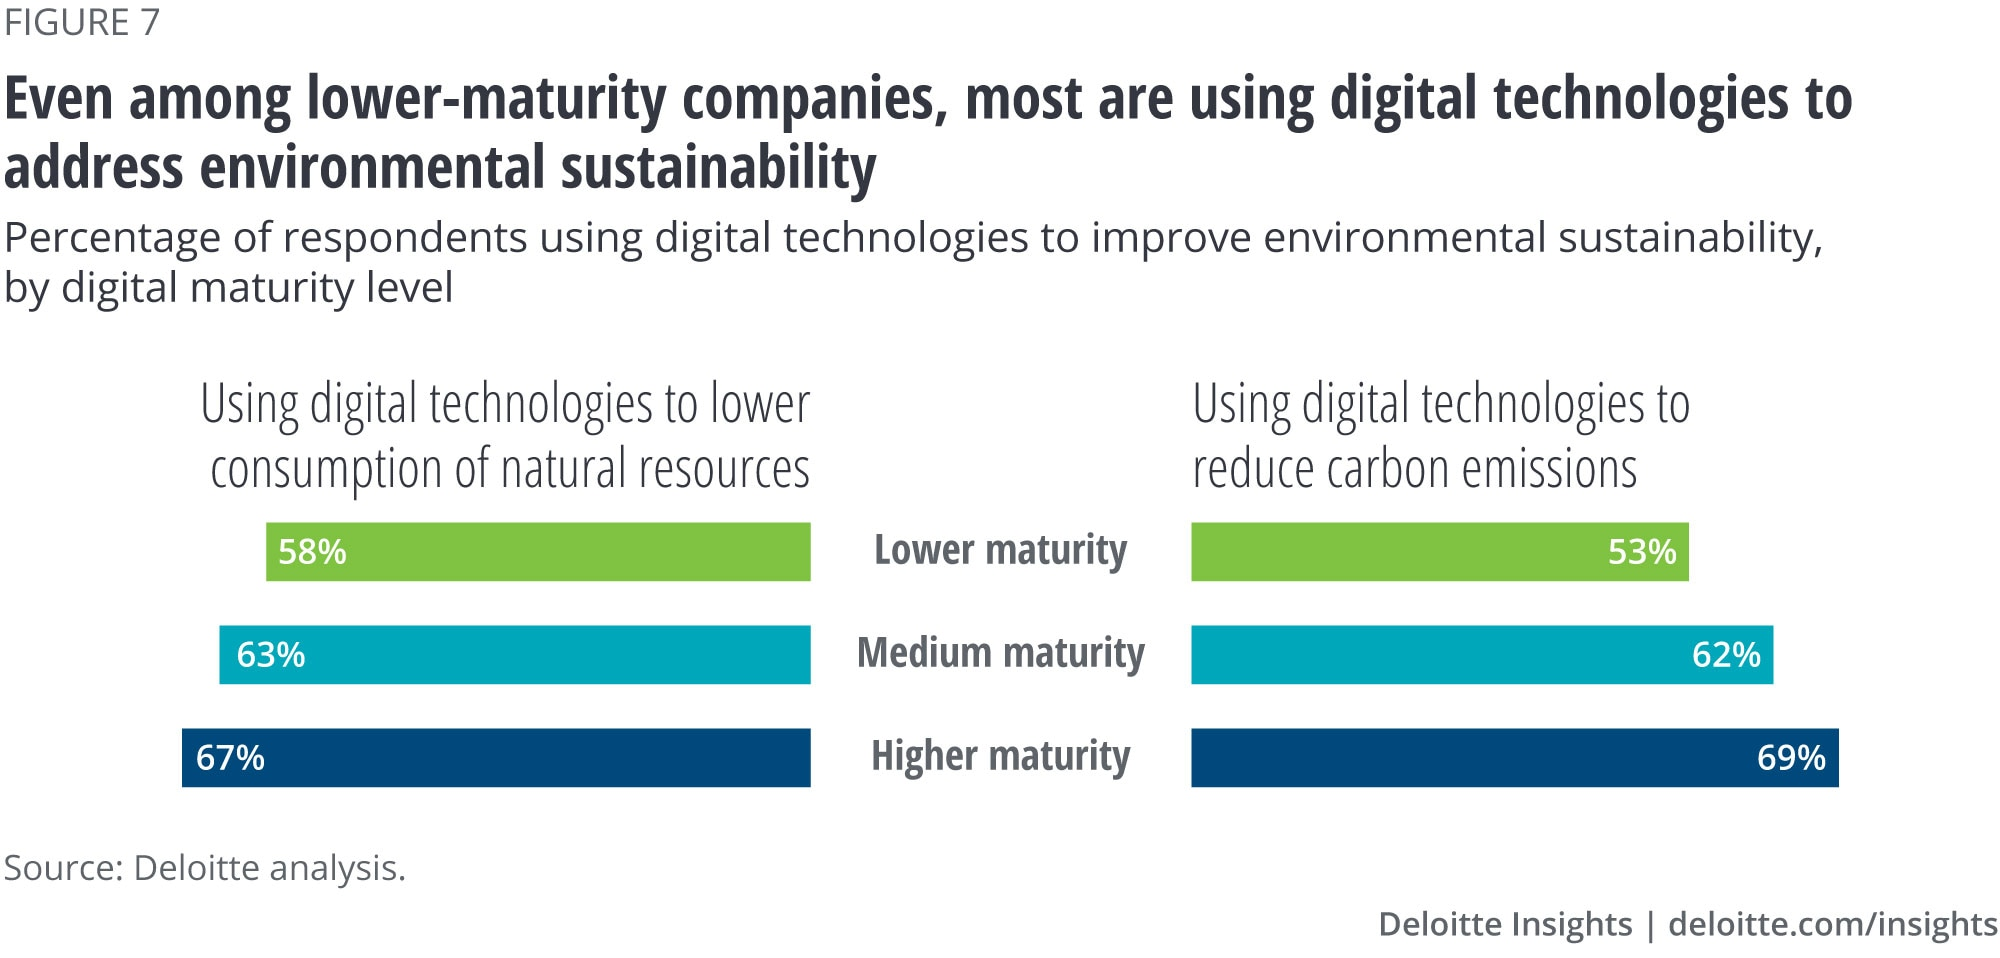 Even among lower-maturity companies, most are using digital technologies to address environment sustainability